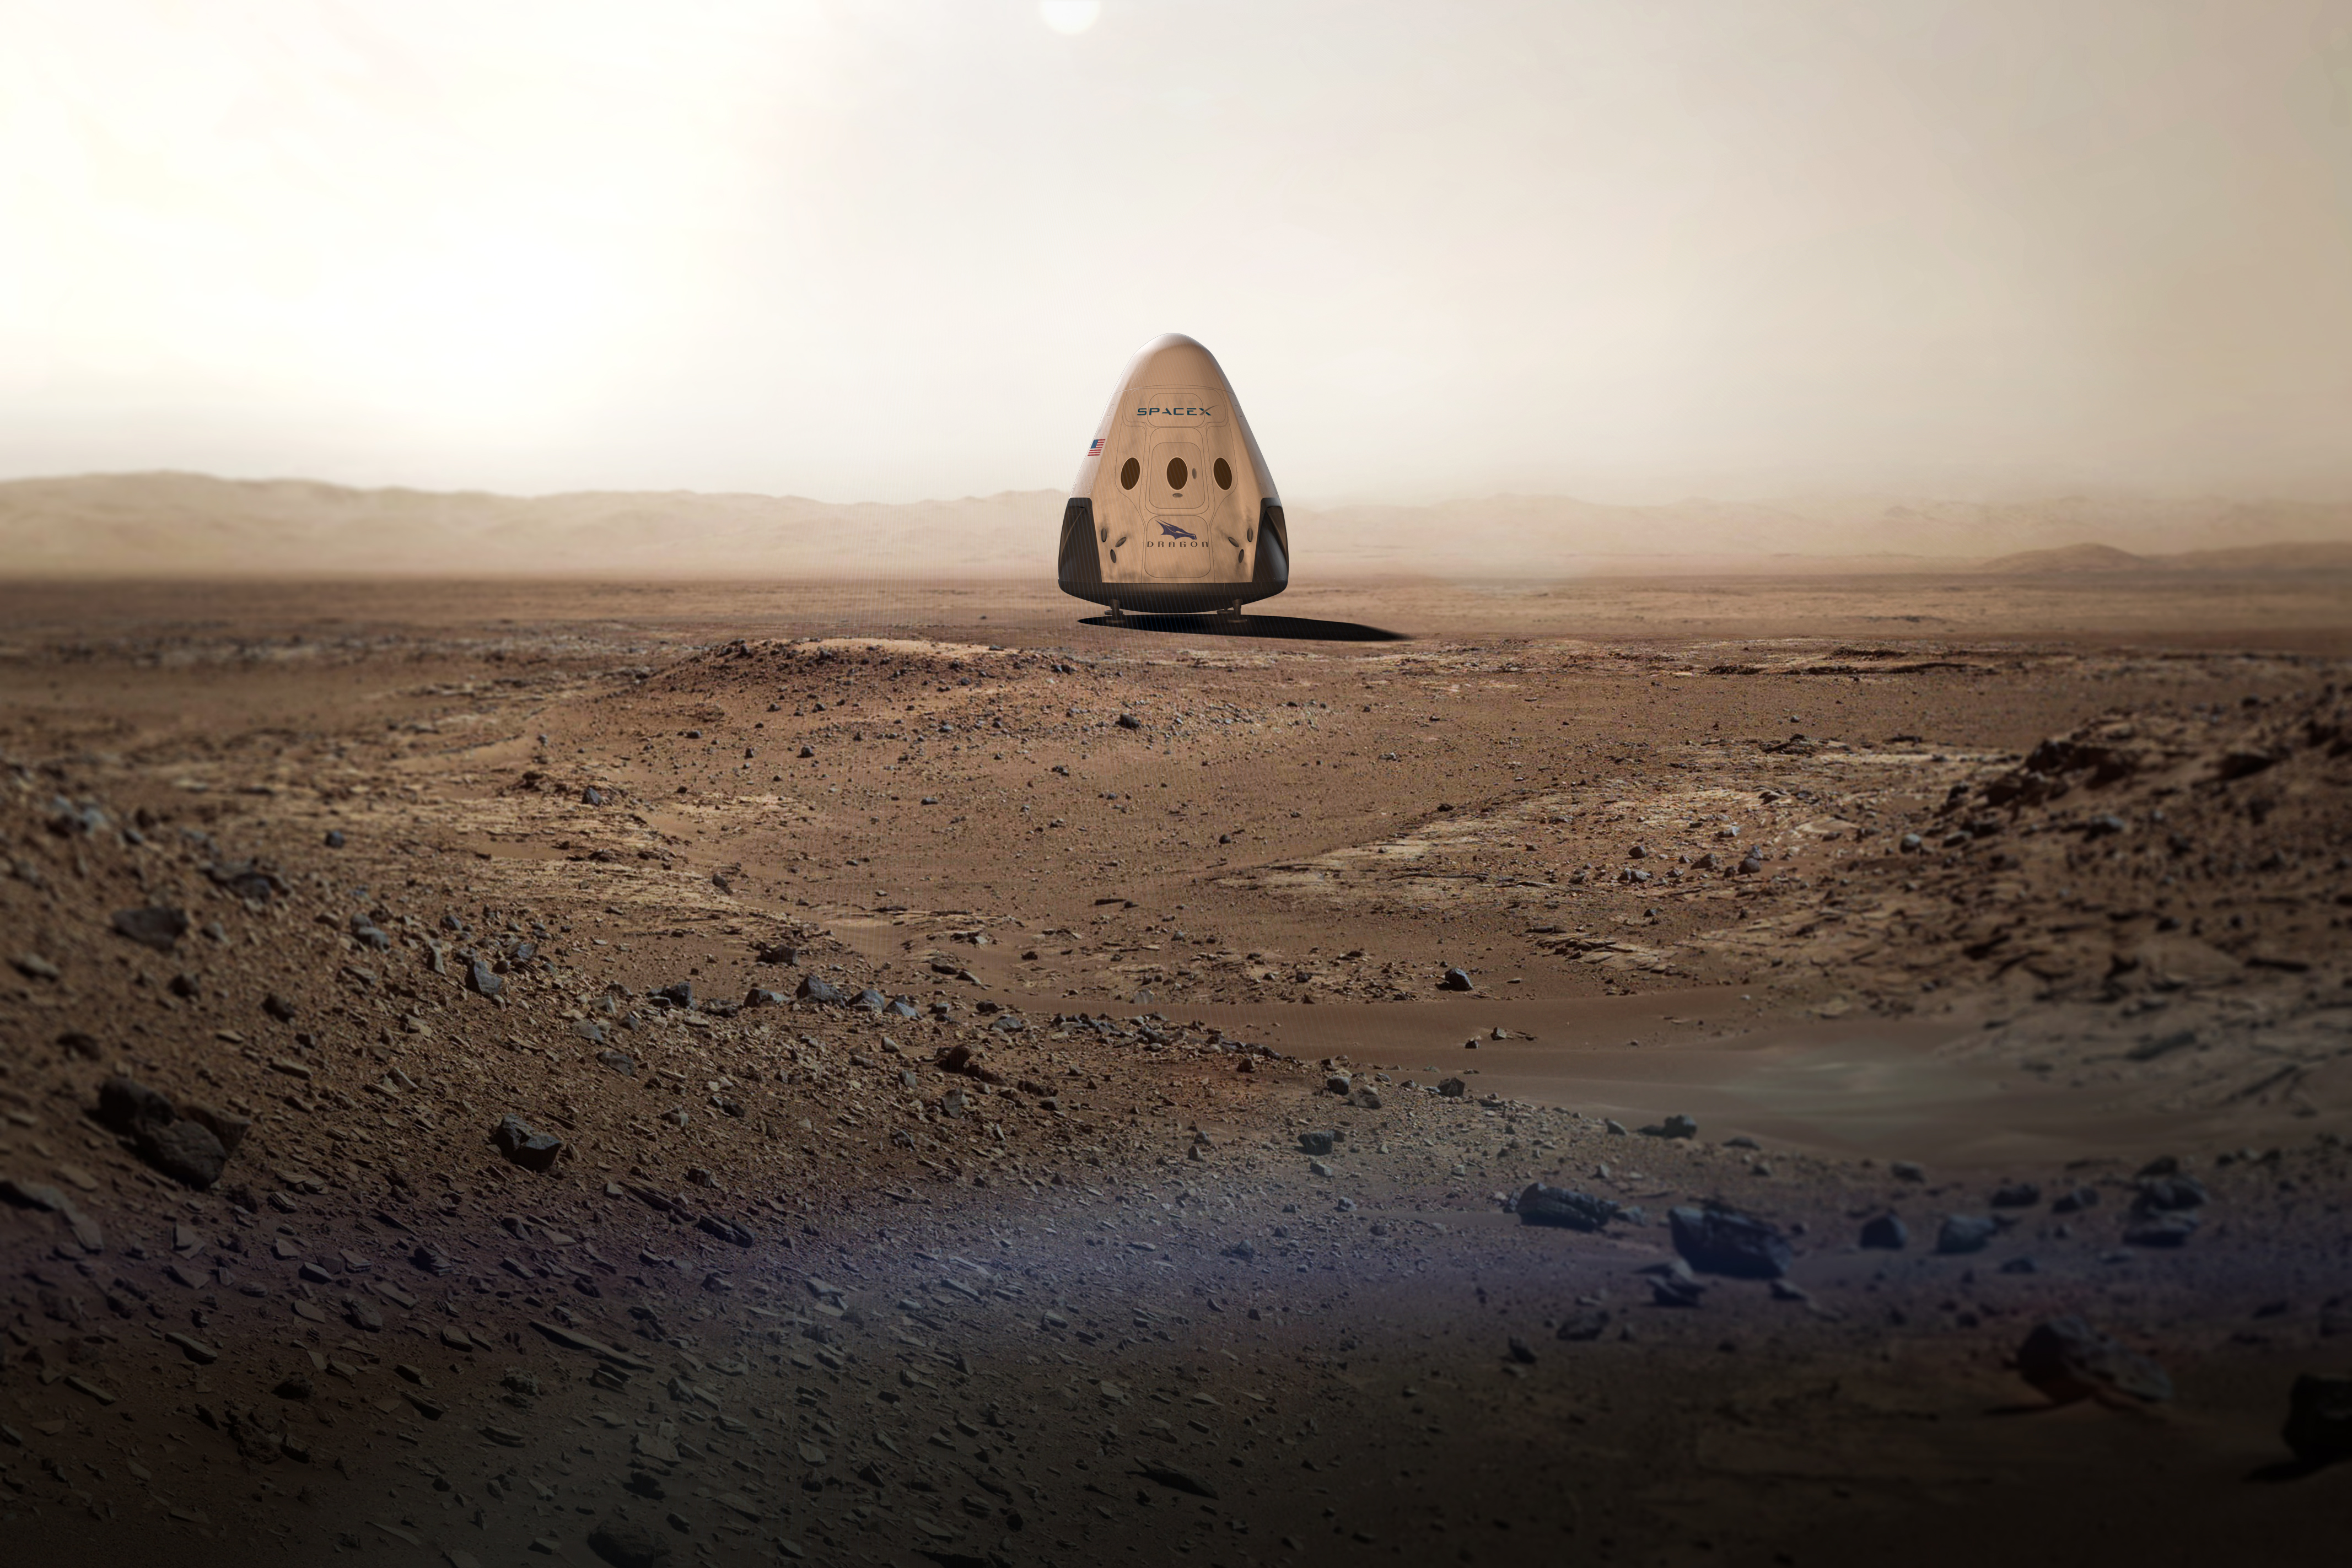 Mission (to be) accomplished: An artist's rendering of the SpaceX vehicle on Mars